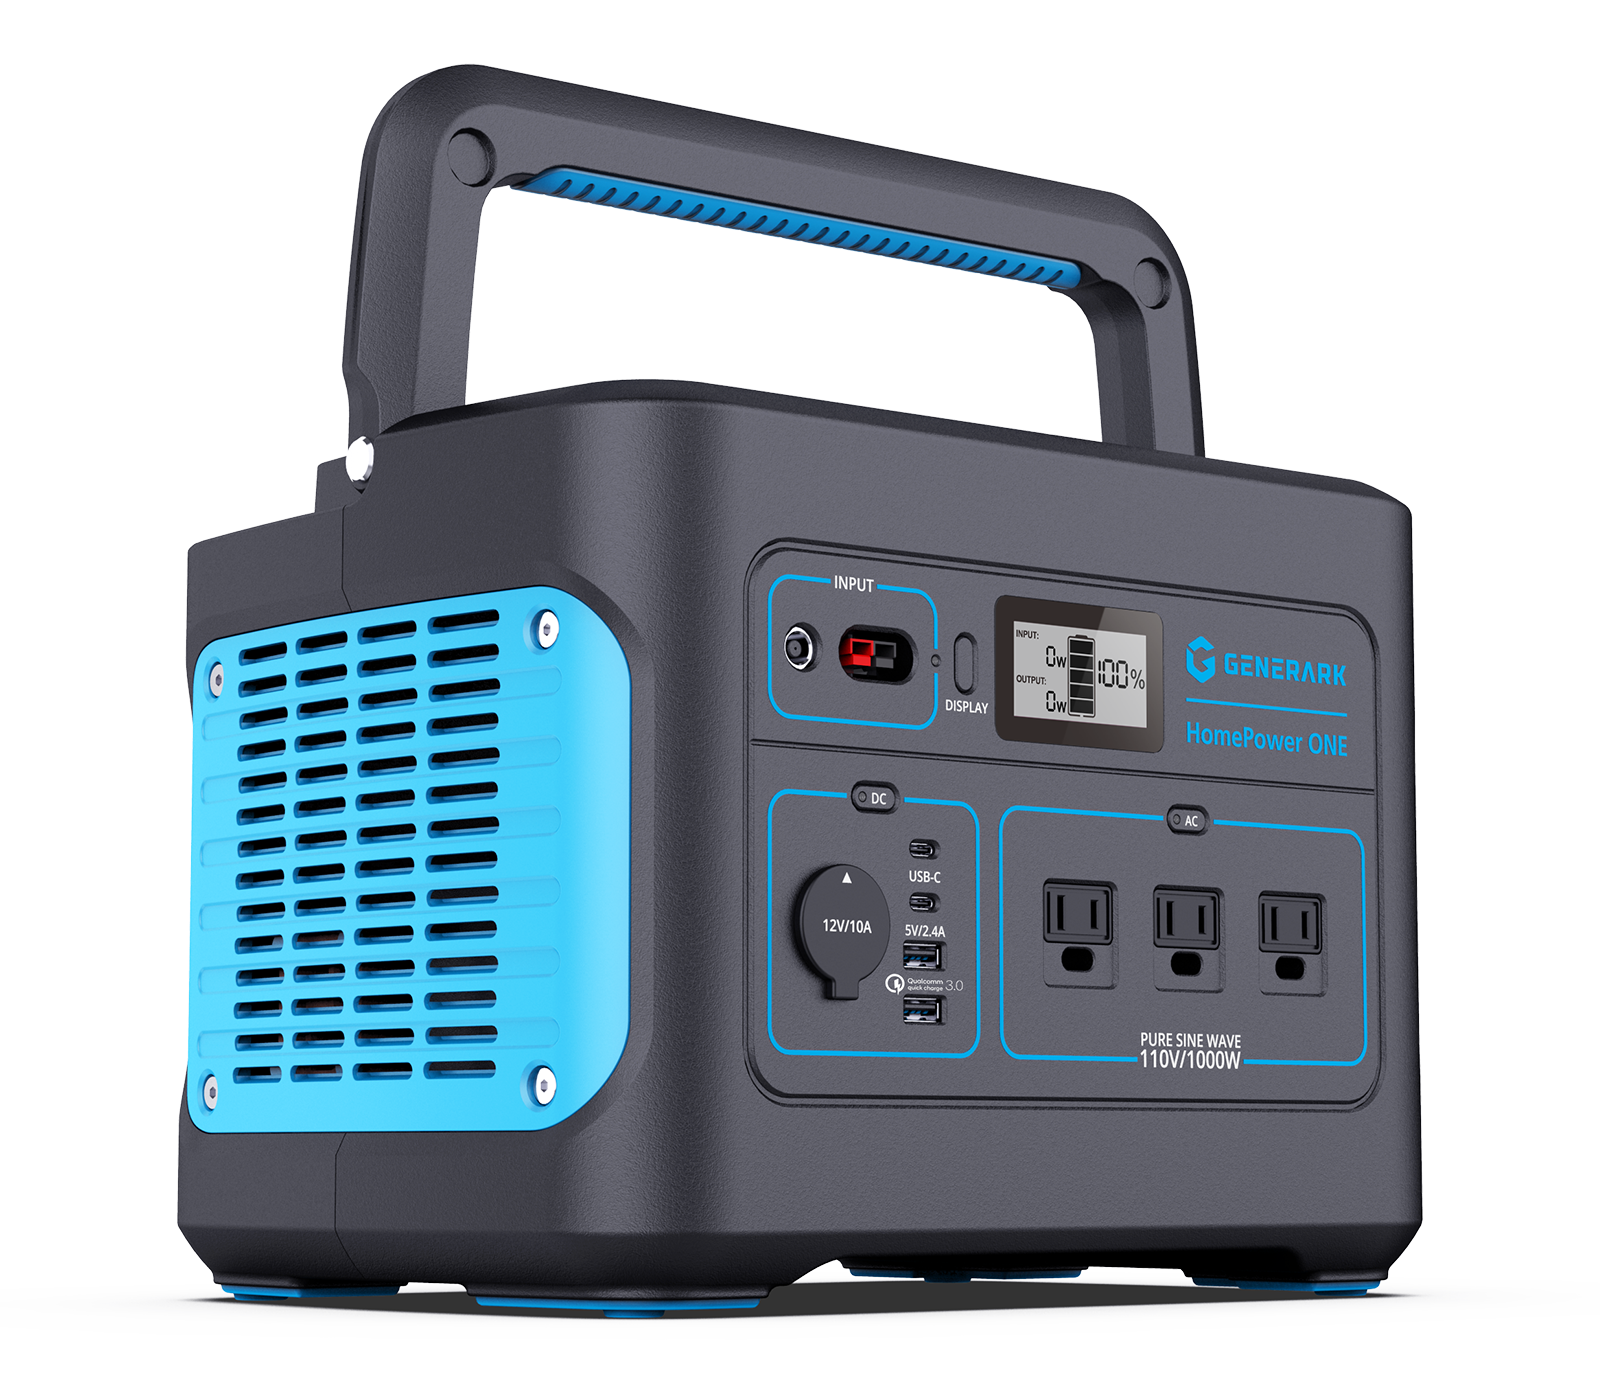 Top 5 Reasons to Purchase the HomePower ONE Emergency Power Supply